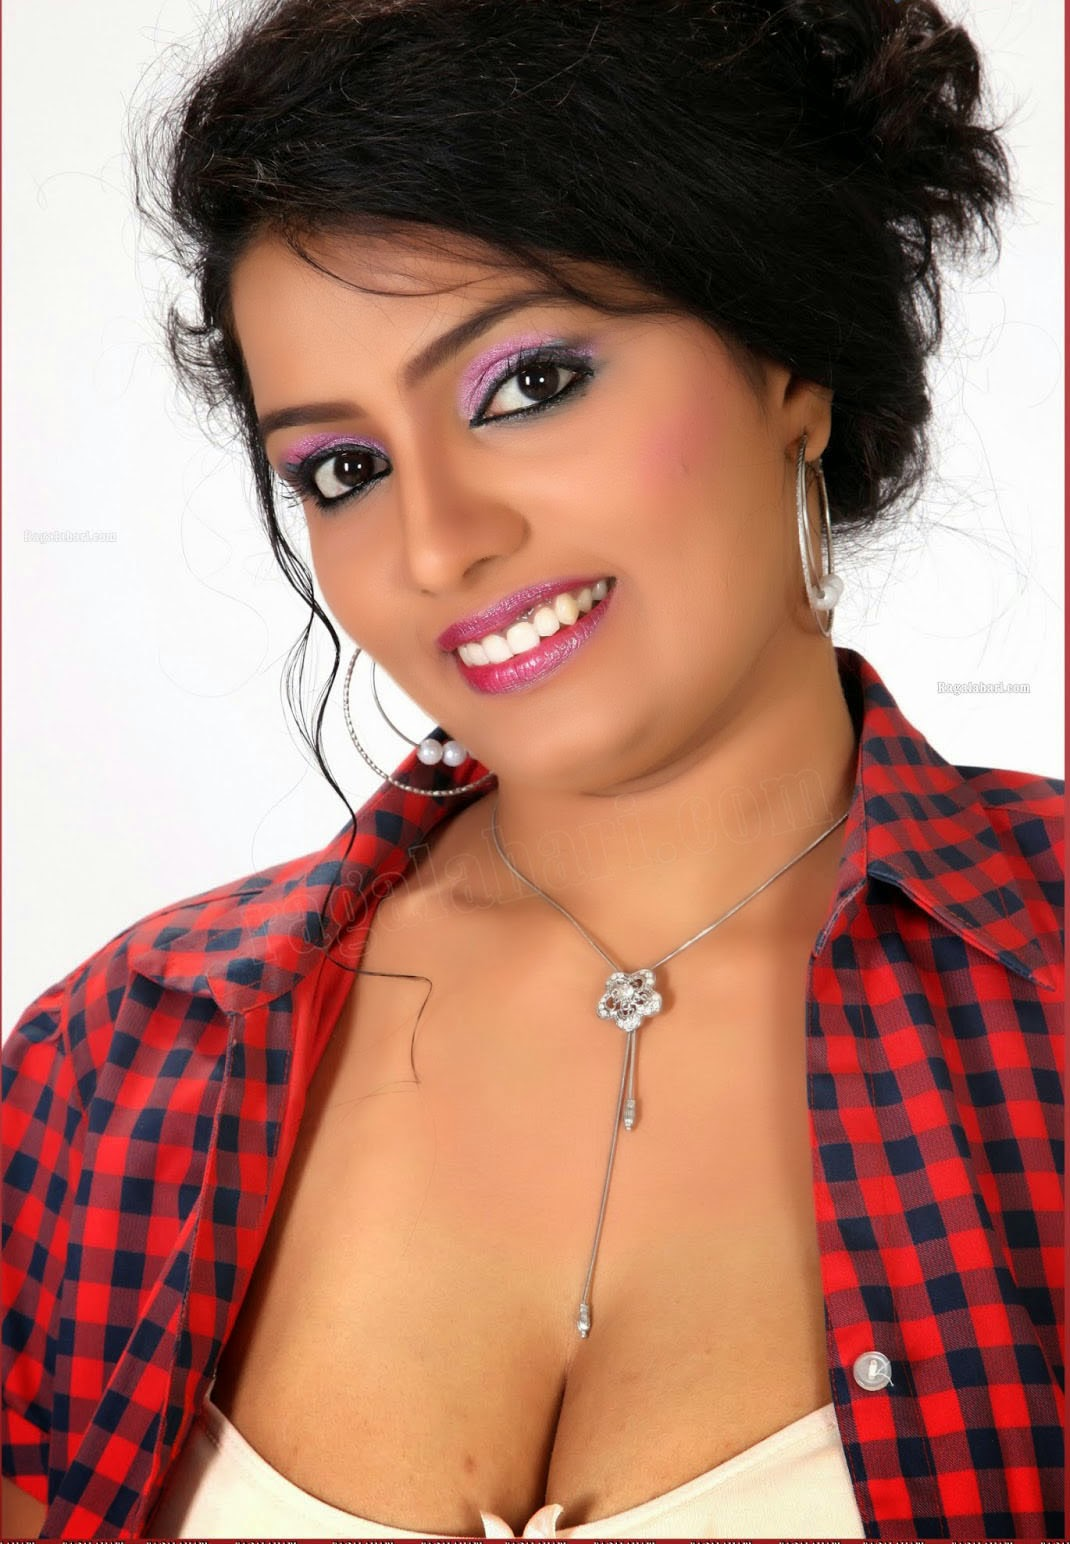 Telugu aunty pictures give